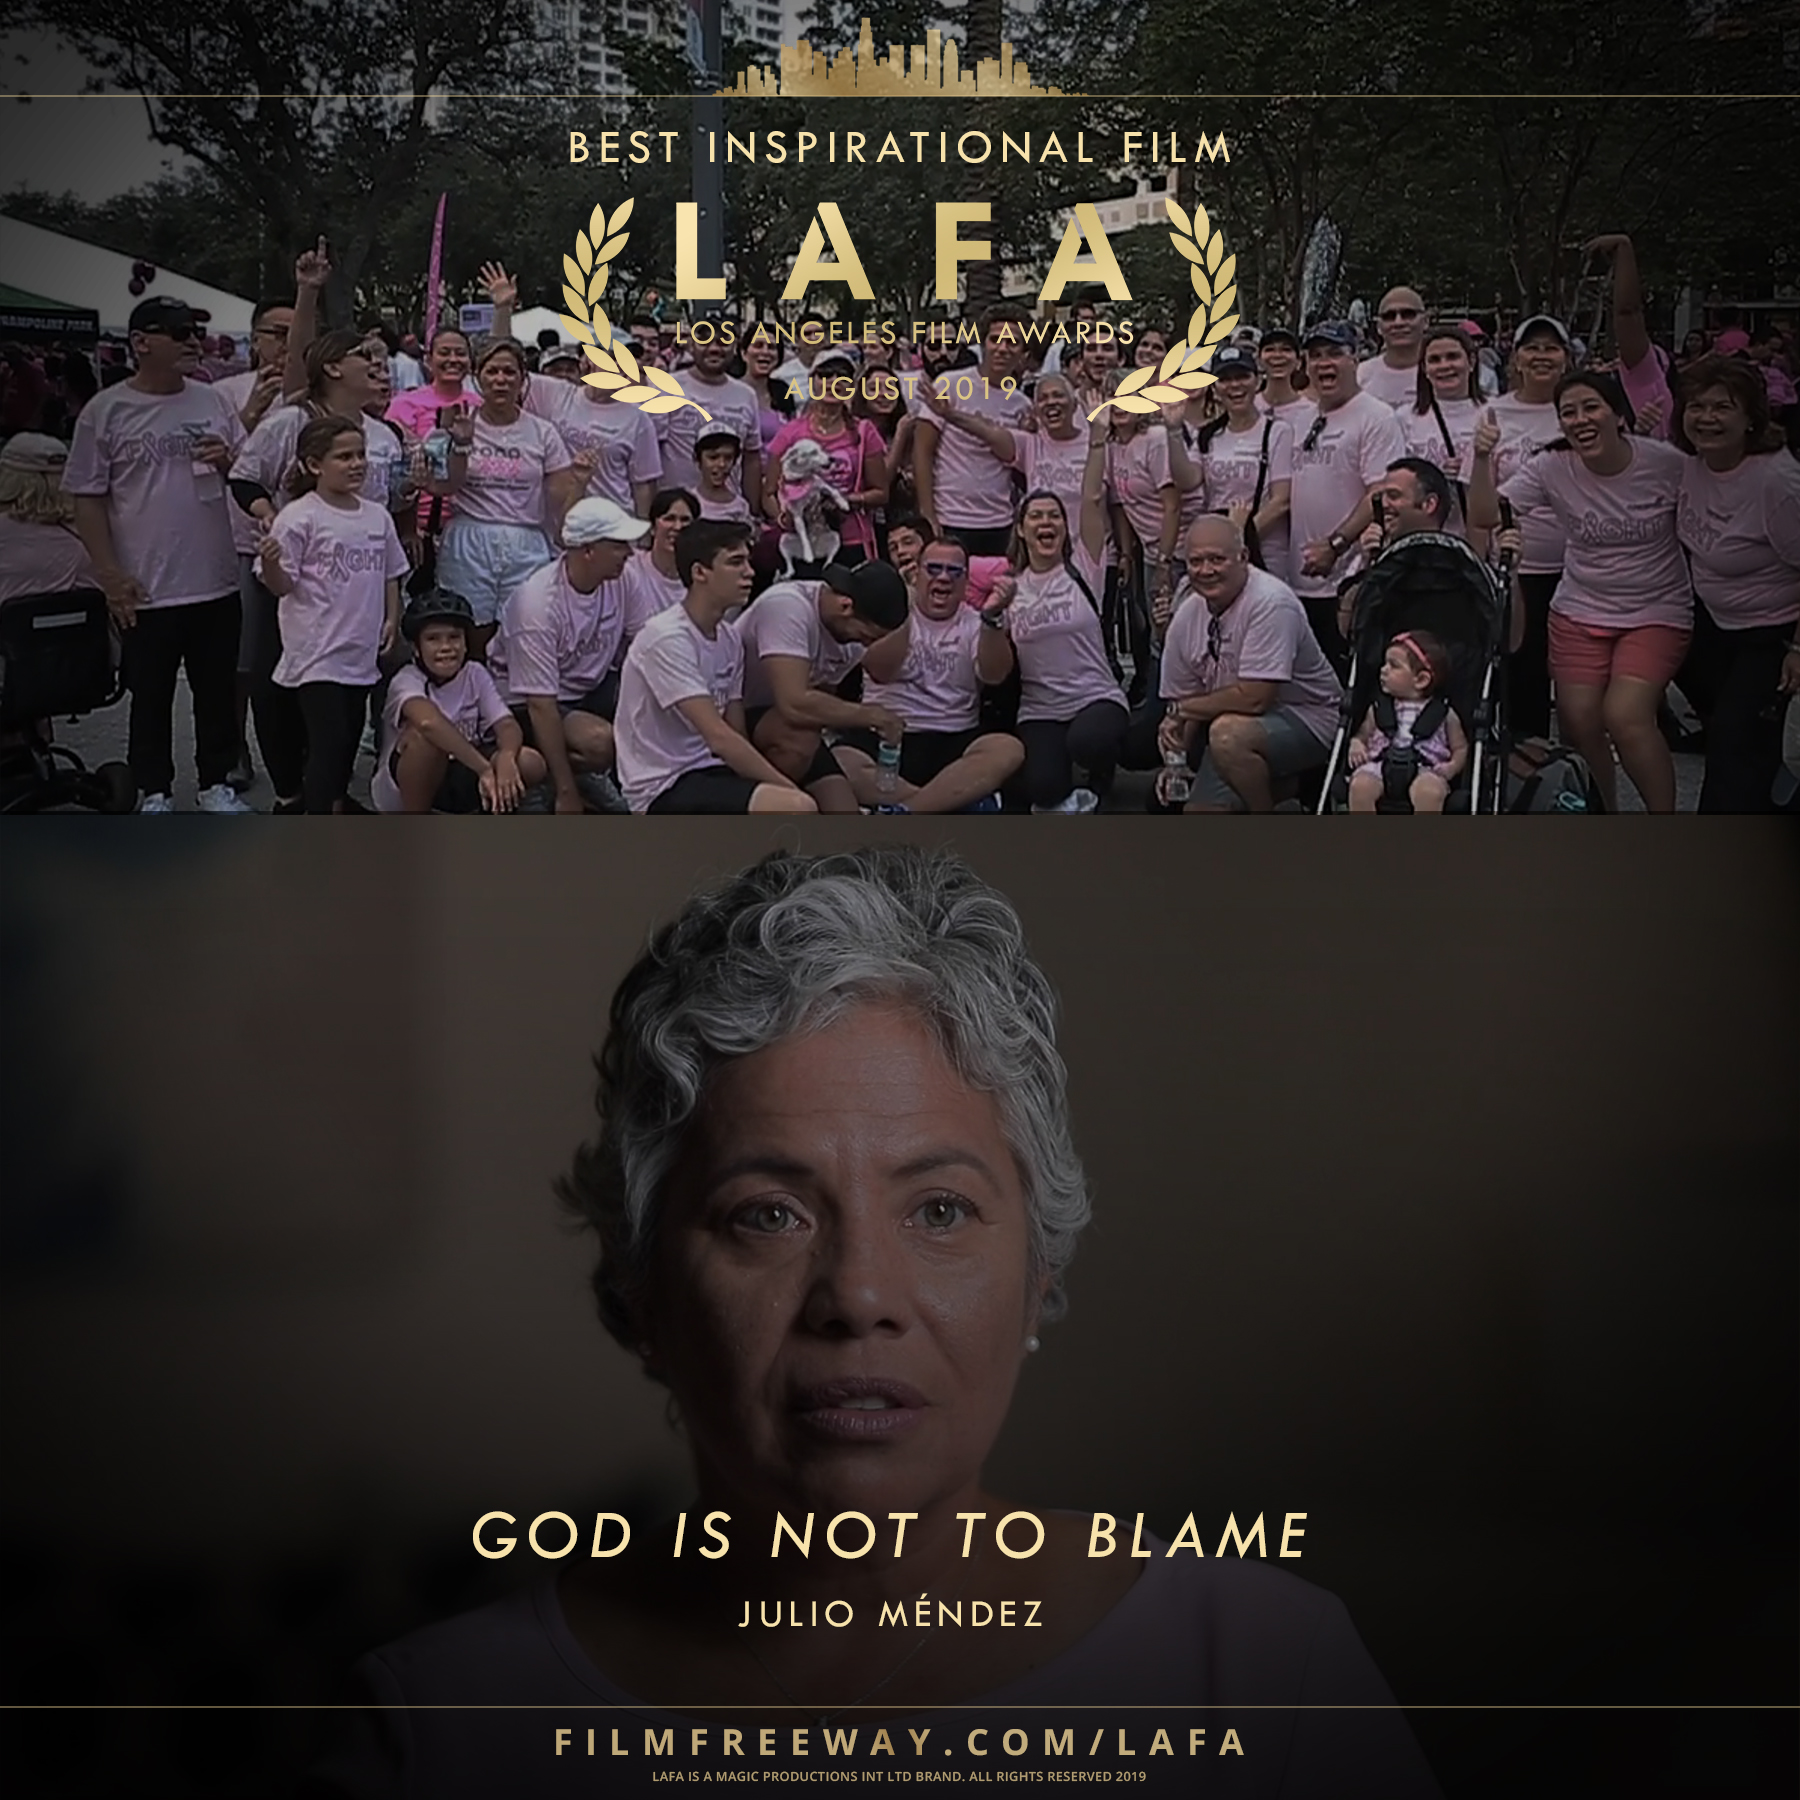 GOD IS NOT TO BLAME design